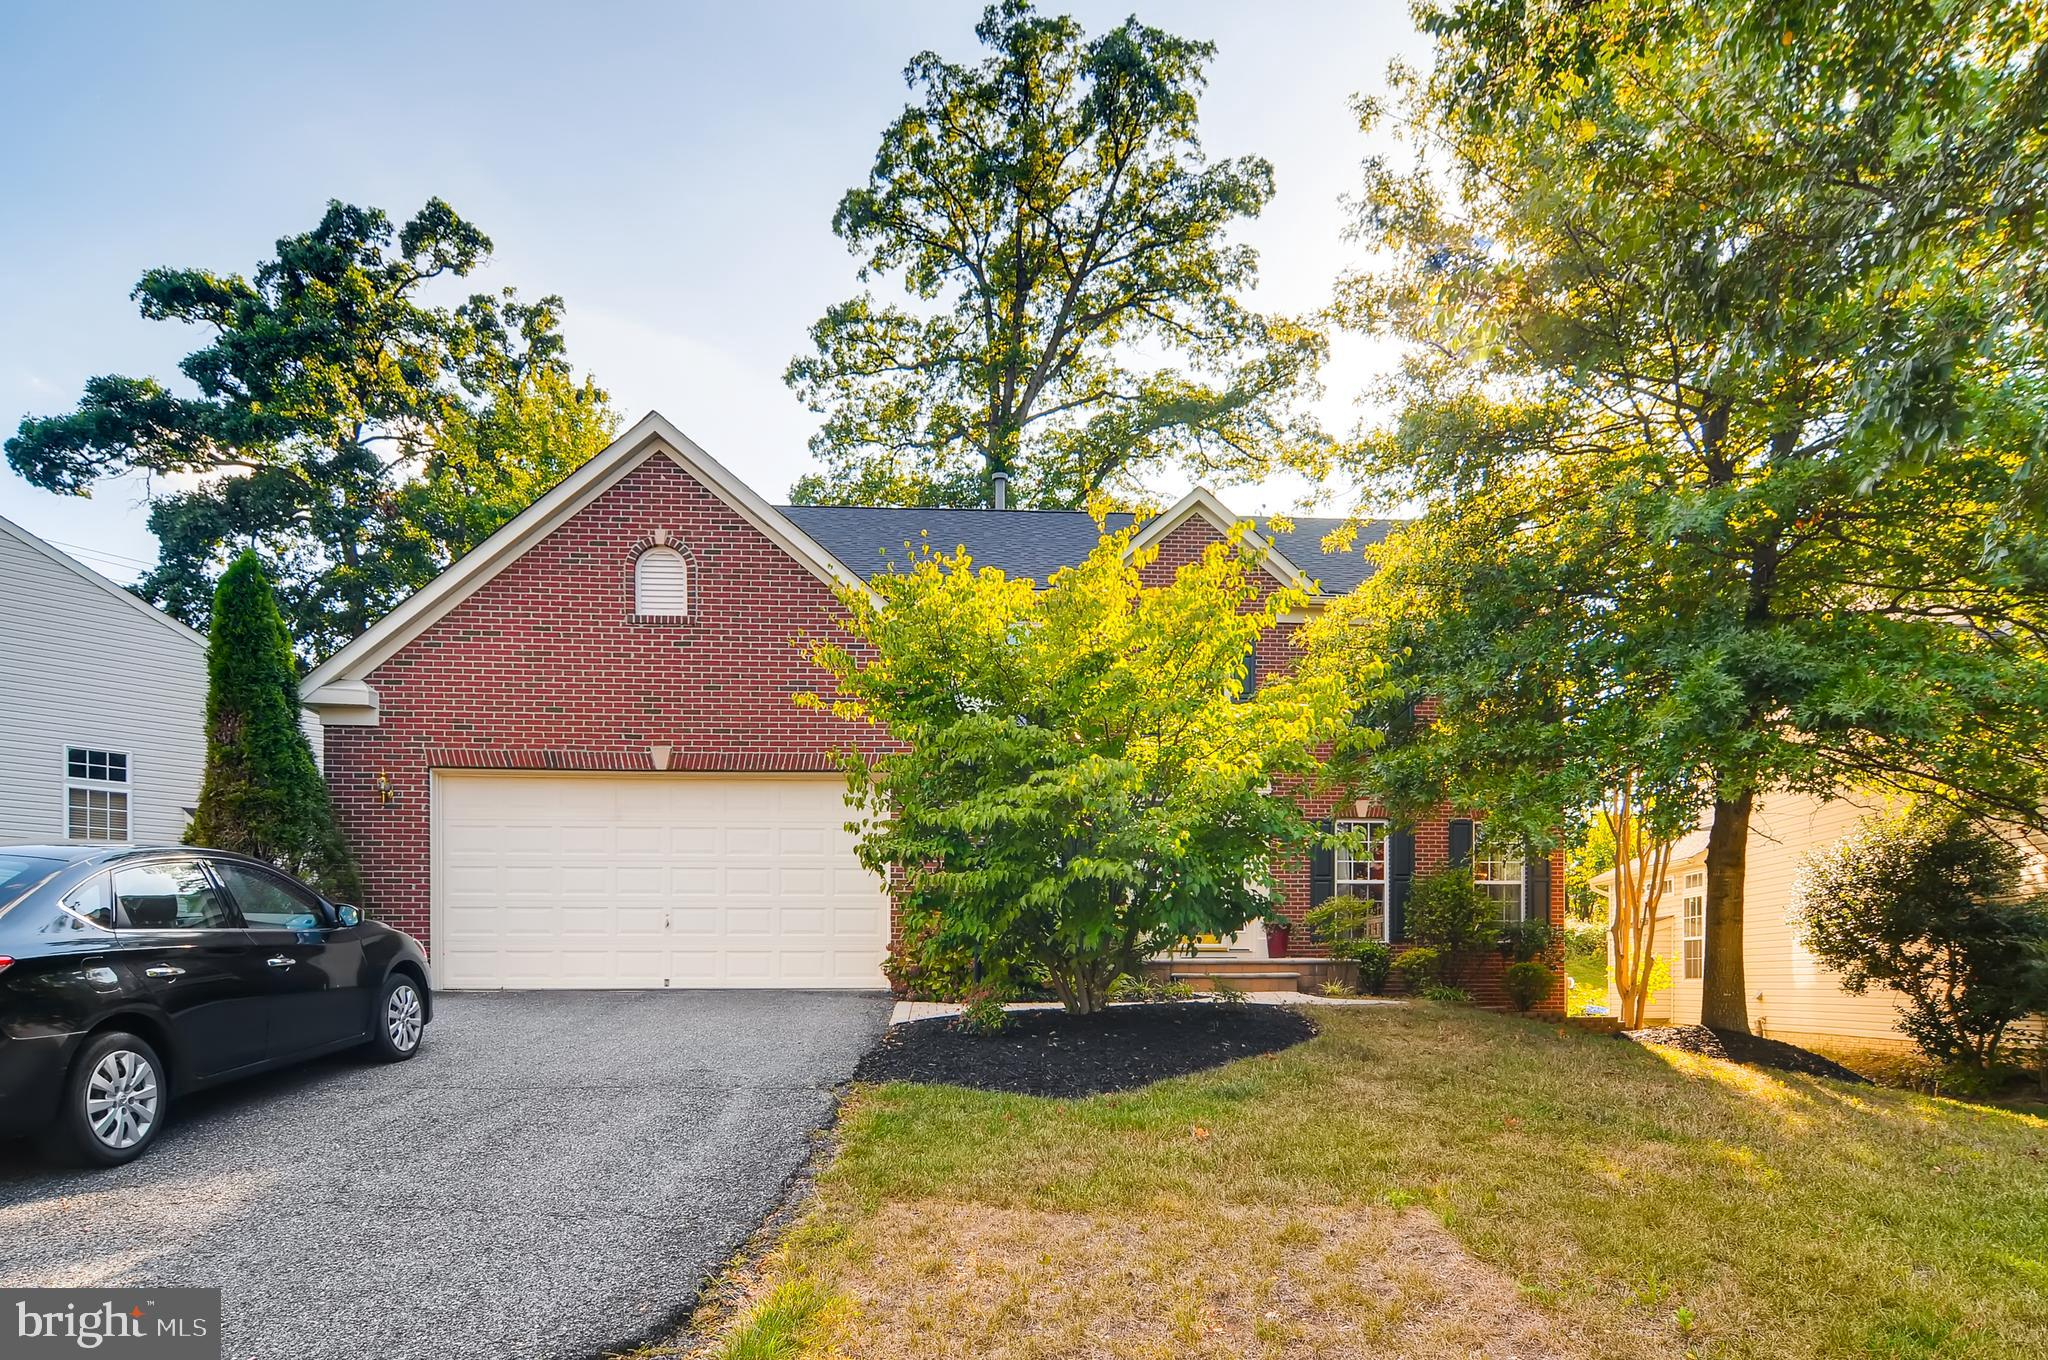 12802 BIG HORN DRIVE, SILVER SPRING, MD 20904